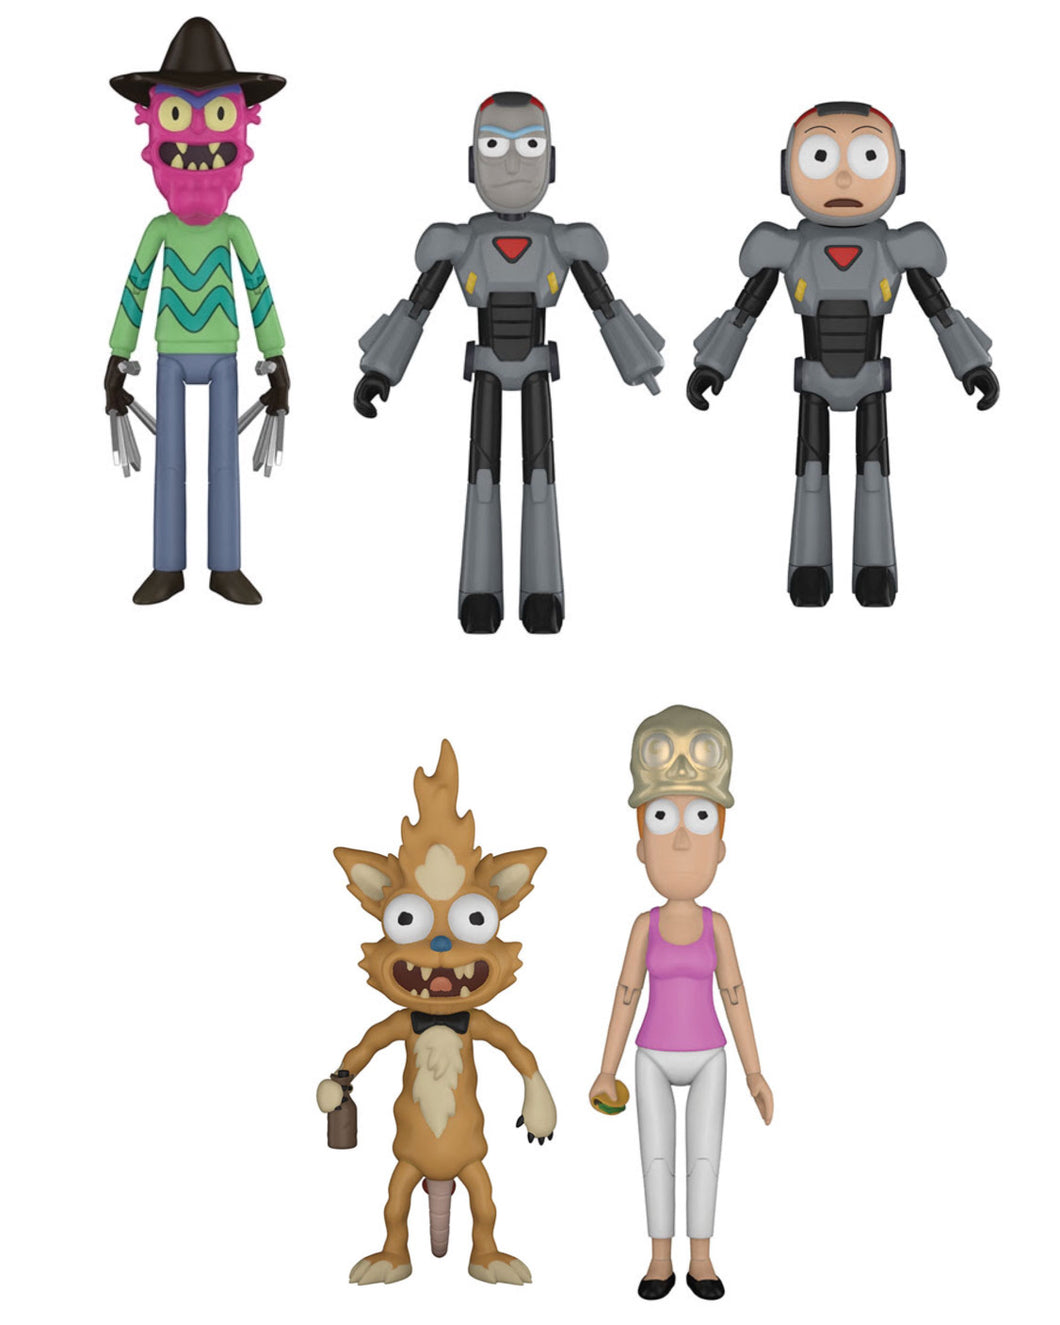 Complete Set of 5 - Rick & Morty Funko Action Figures